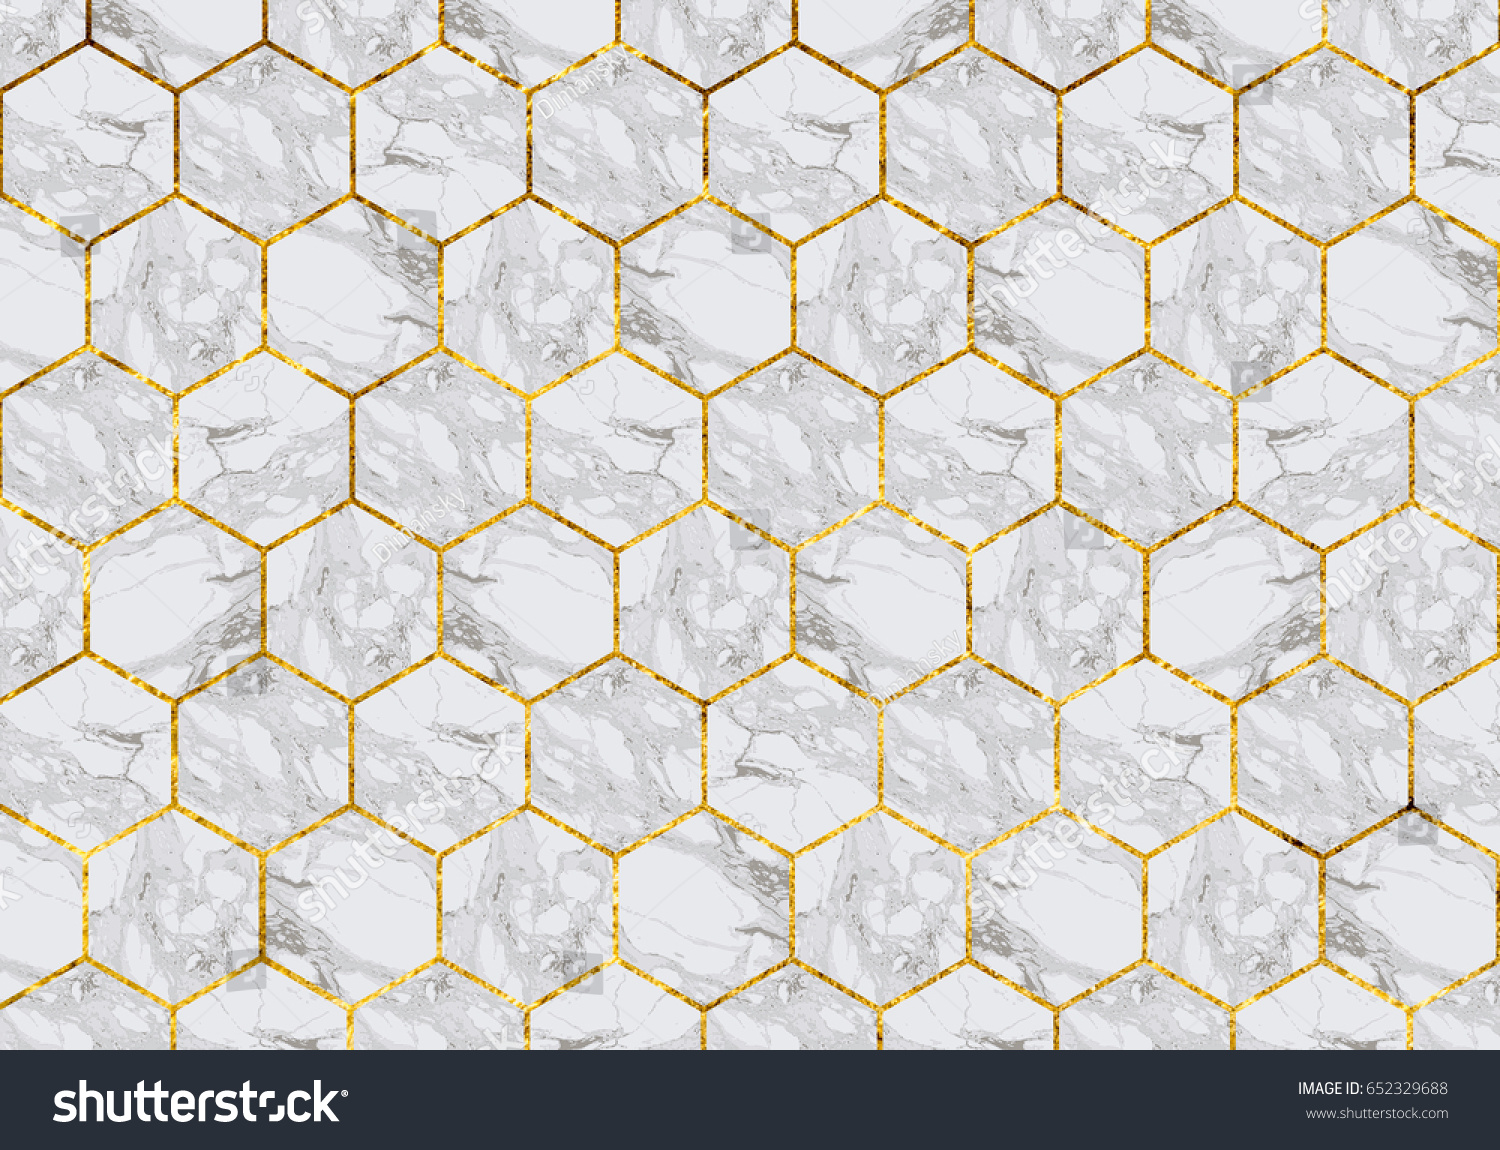 Marble Tiles Gold Grout Stock Photo 652329688 - Shutterstock